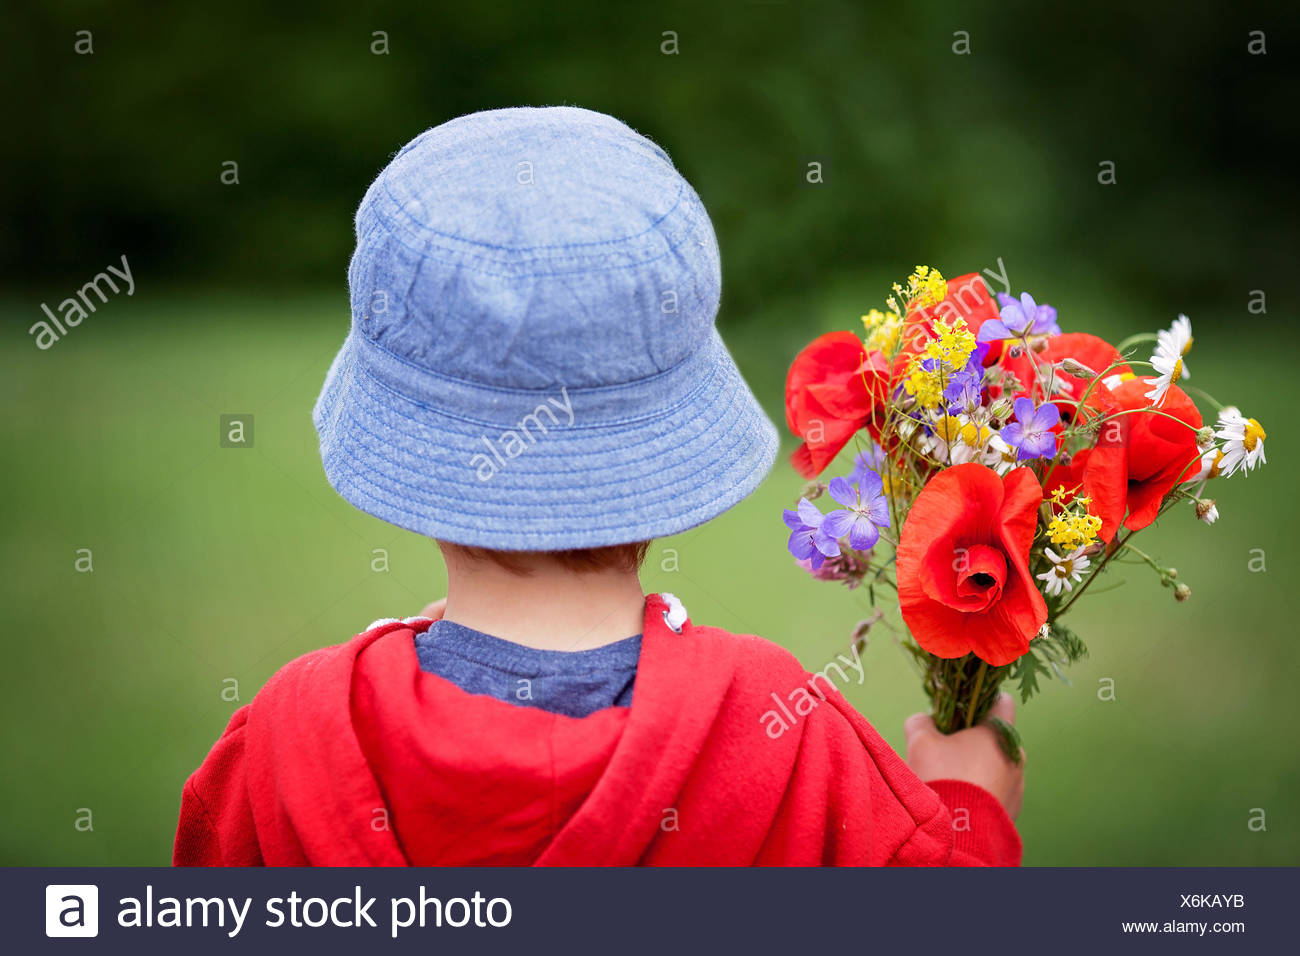 Rear view of a boy holding a bouquet of multi-colored flowers - Stock Image